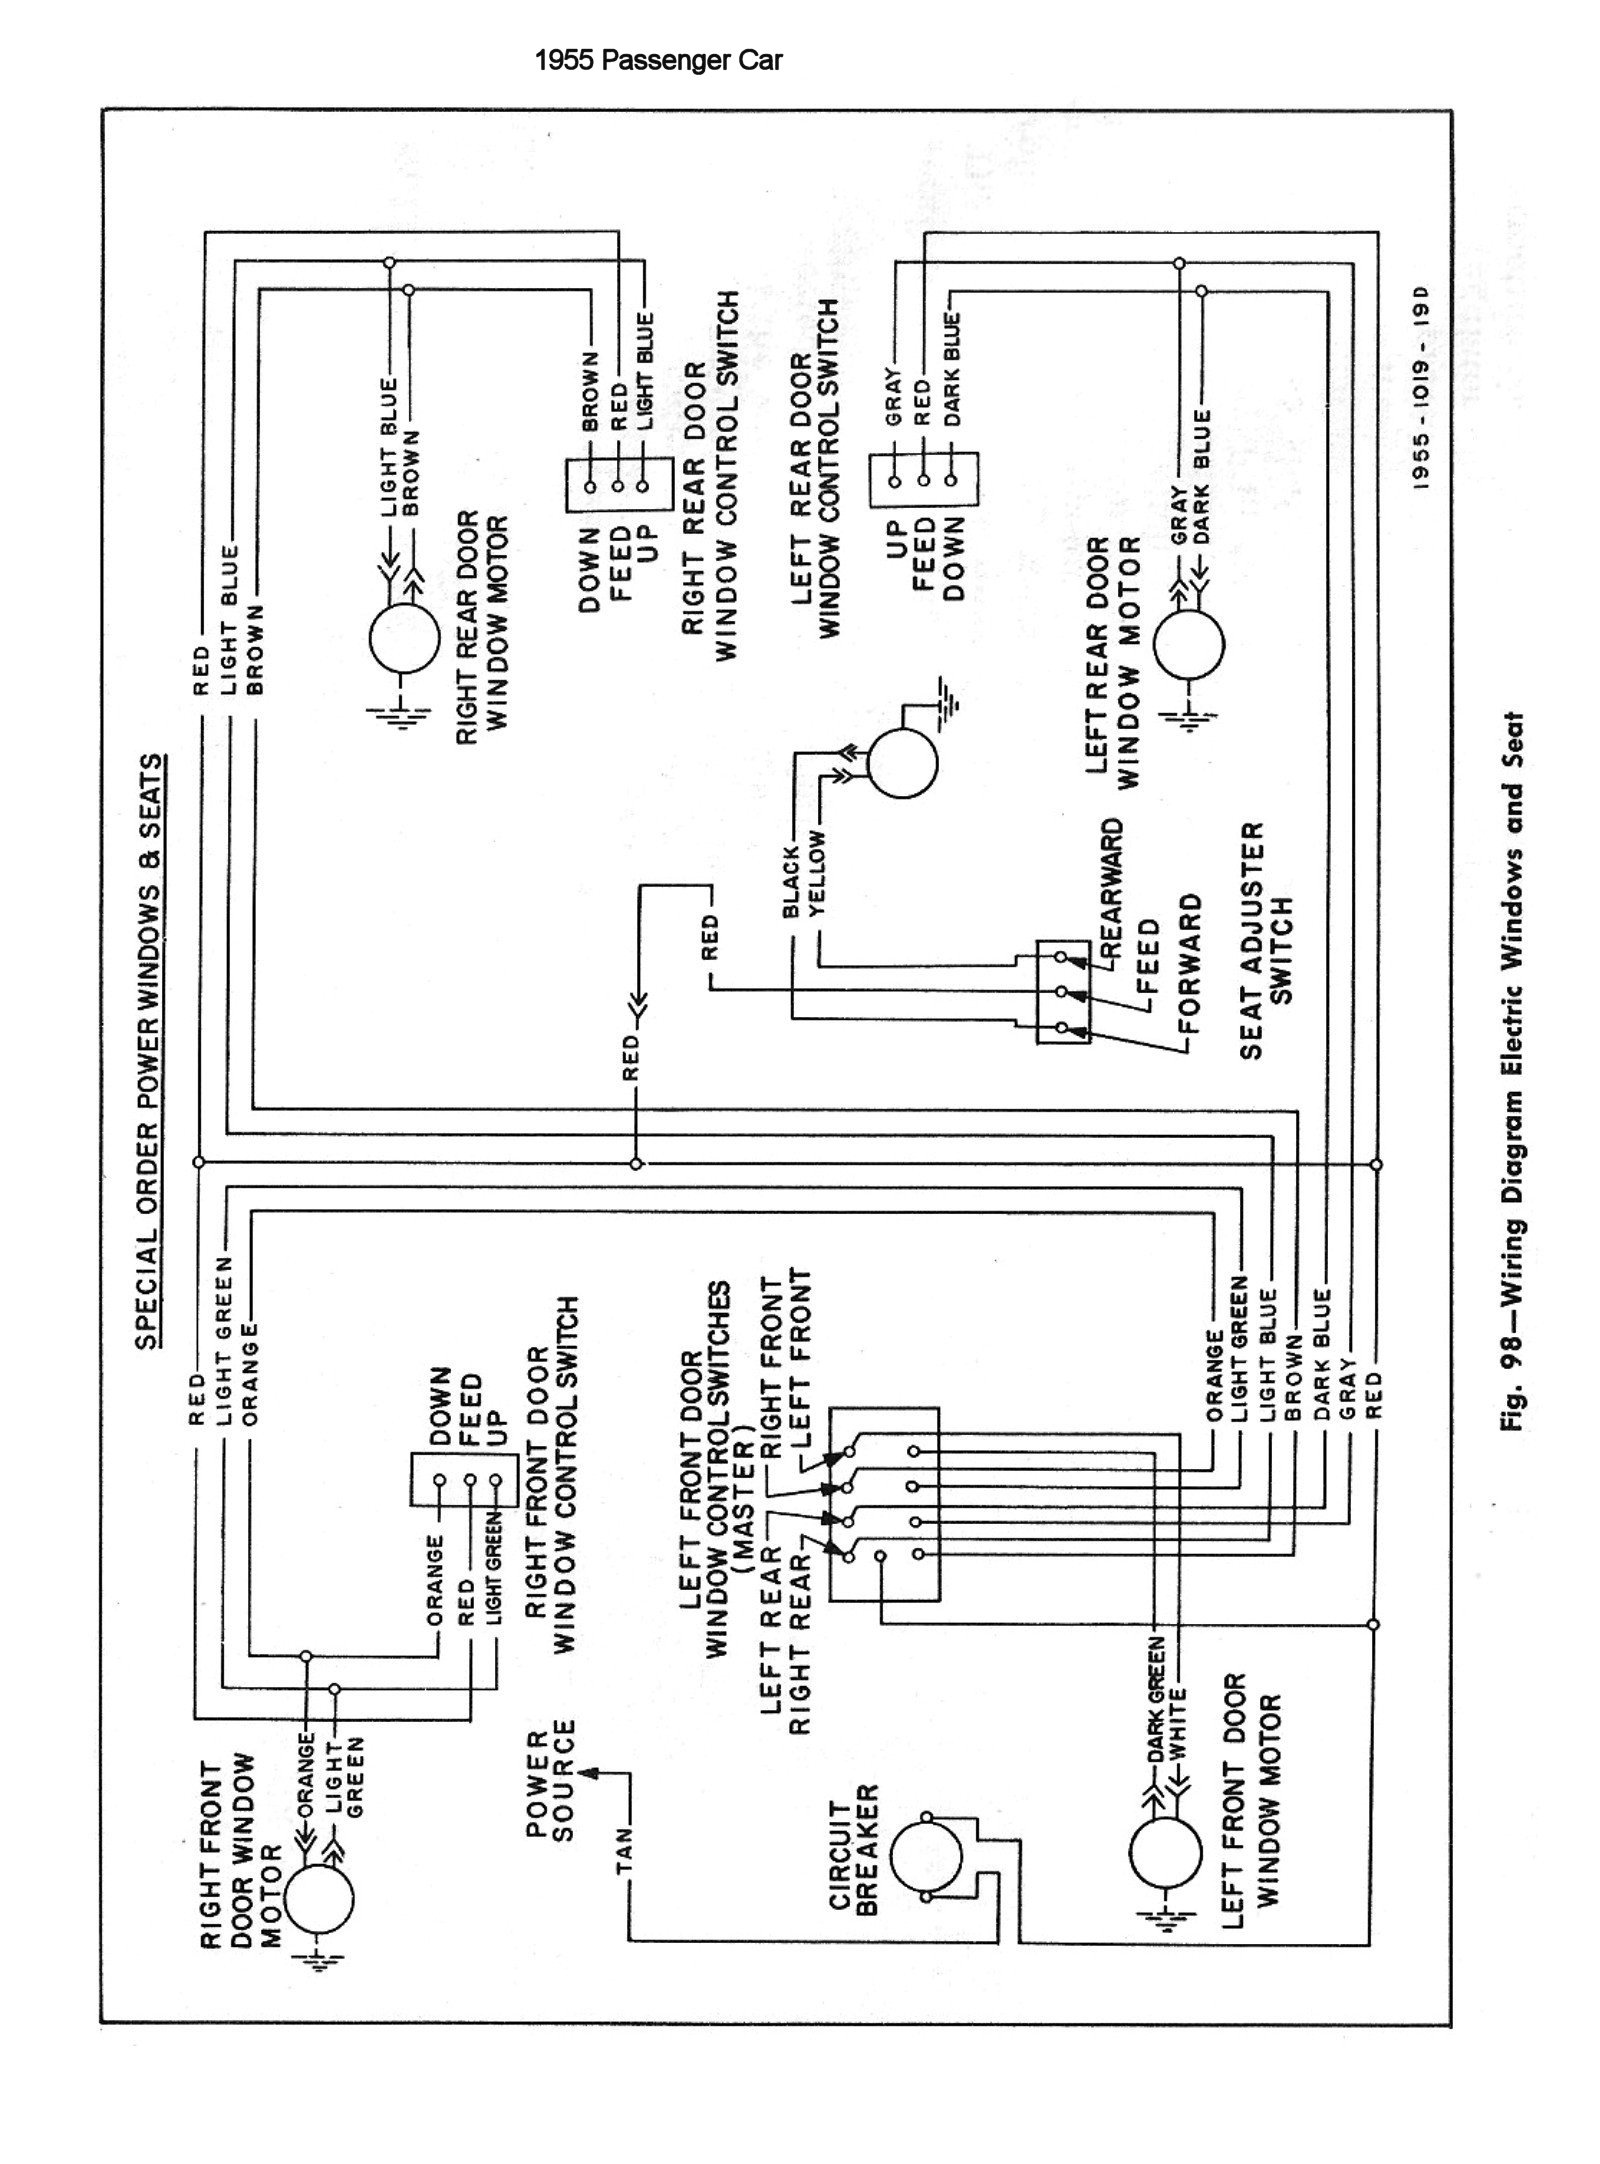 55csm0146 chevy wiring diagrams chevy power window wiring diagram at gsmx.co